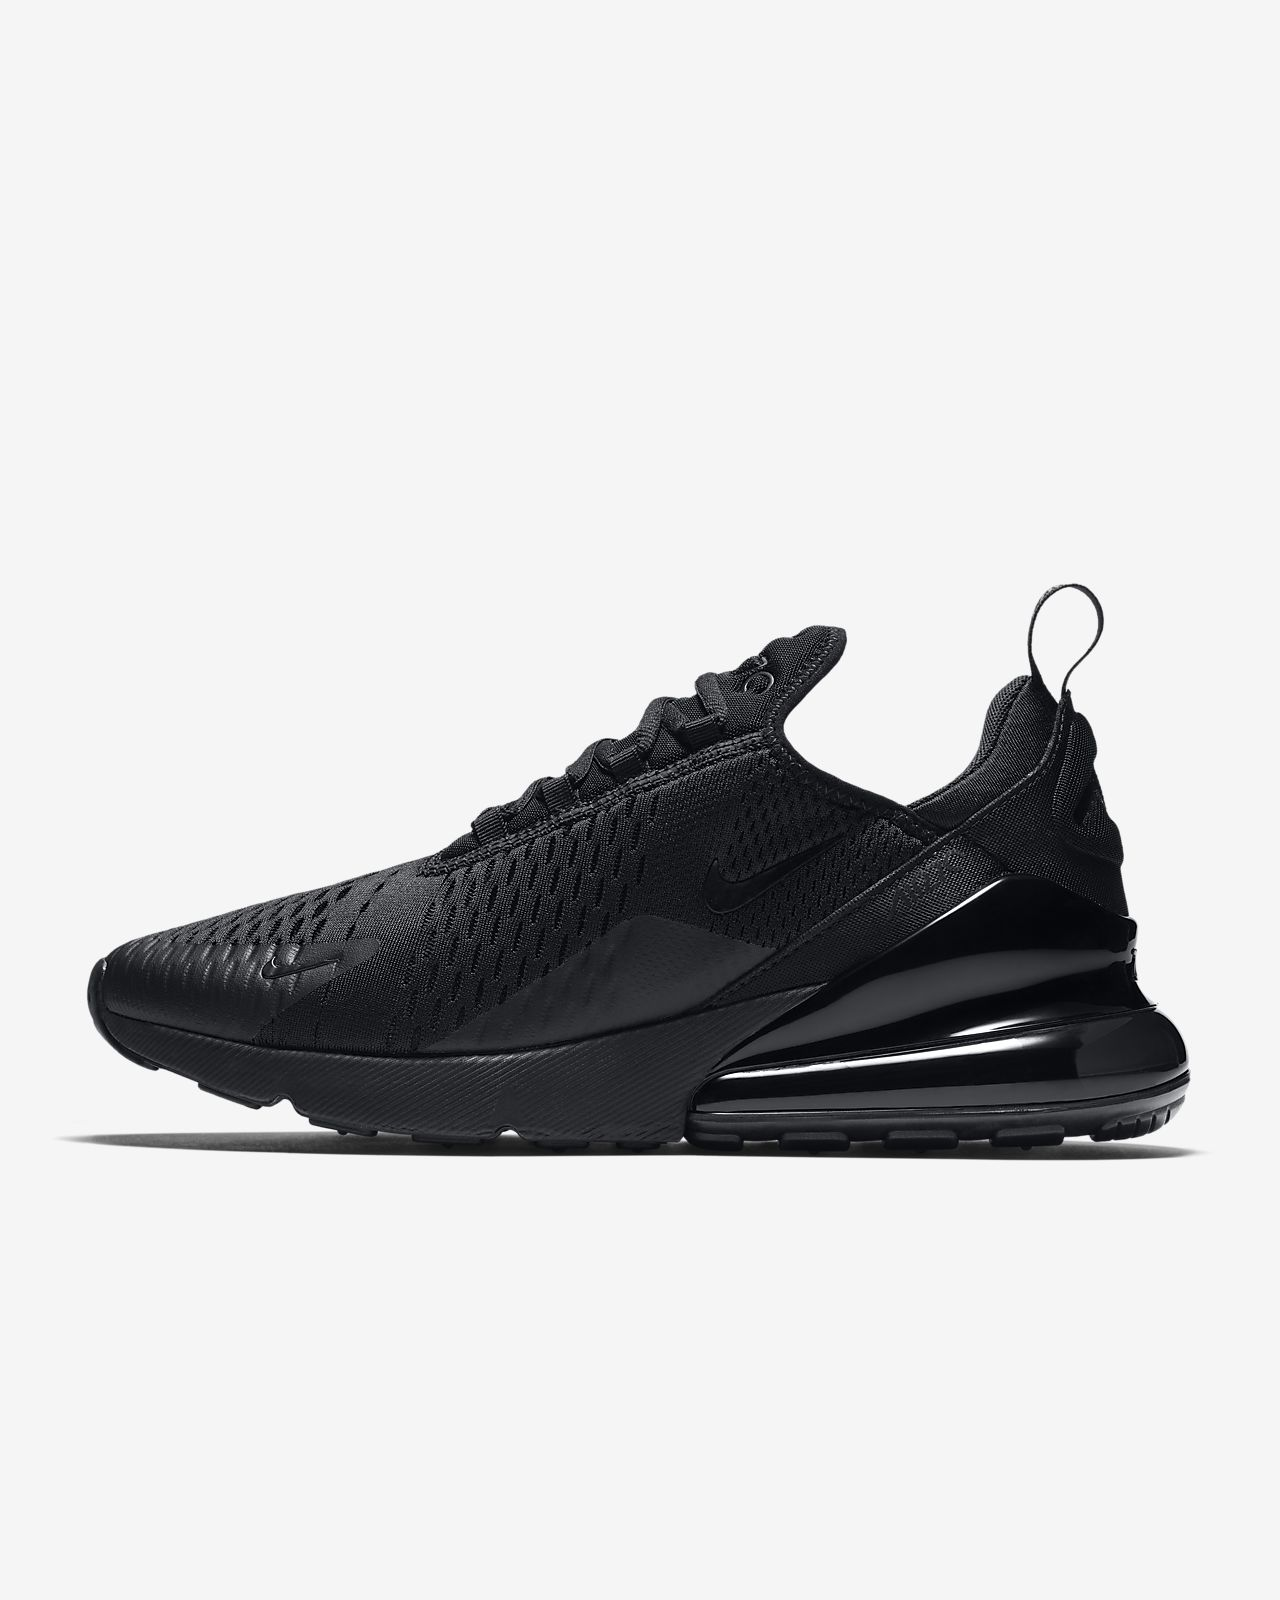 522fb5d7eaad Nike Air Max 270 Men s Shoe. Nike.com AU